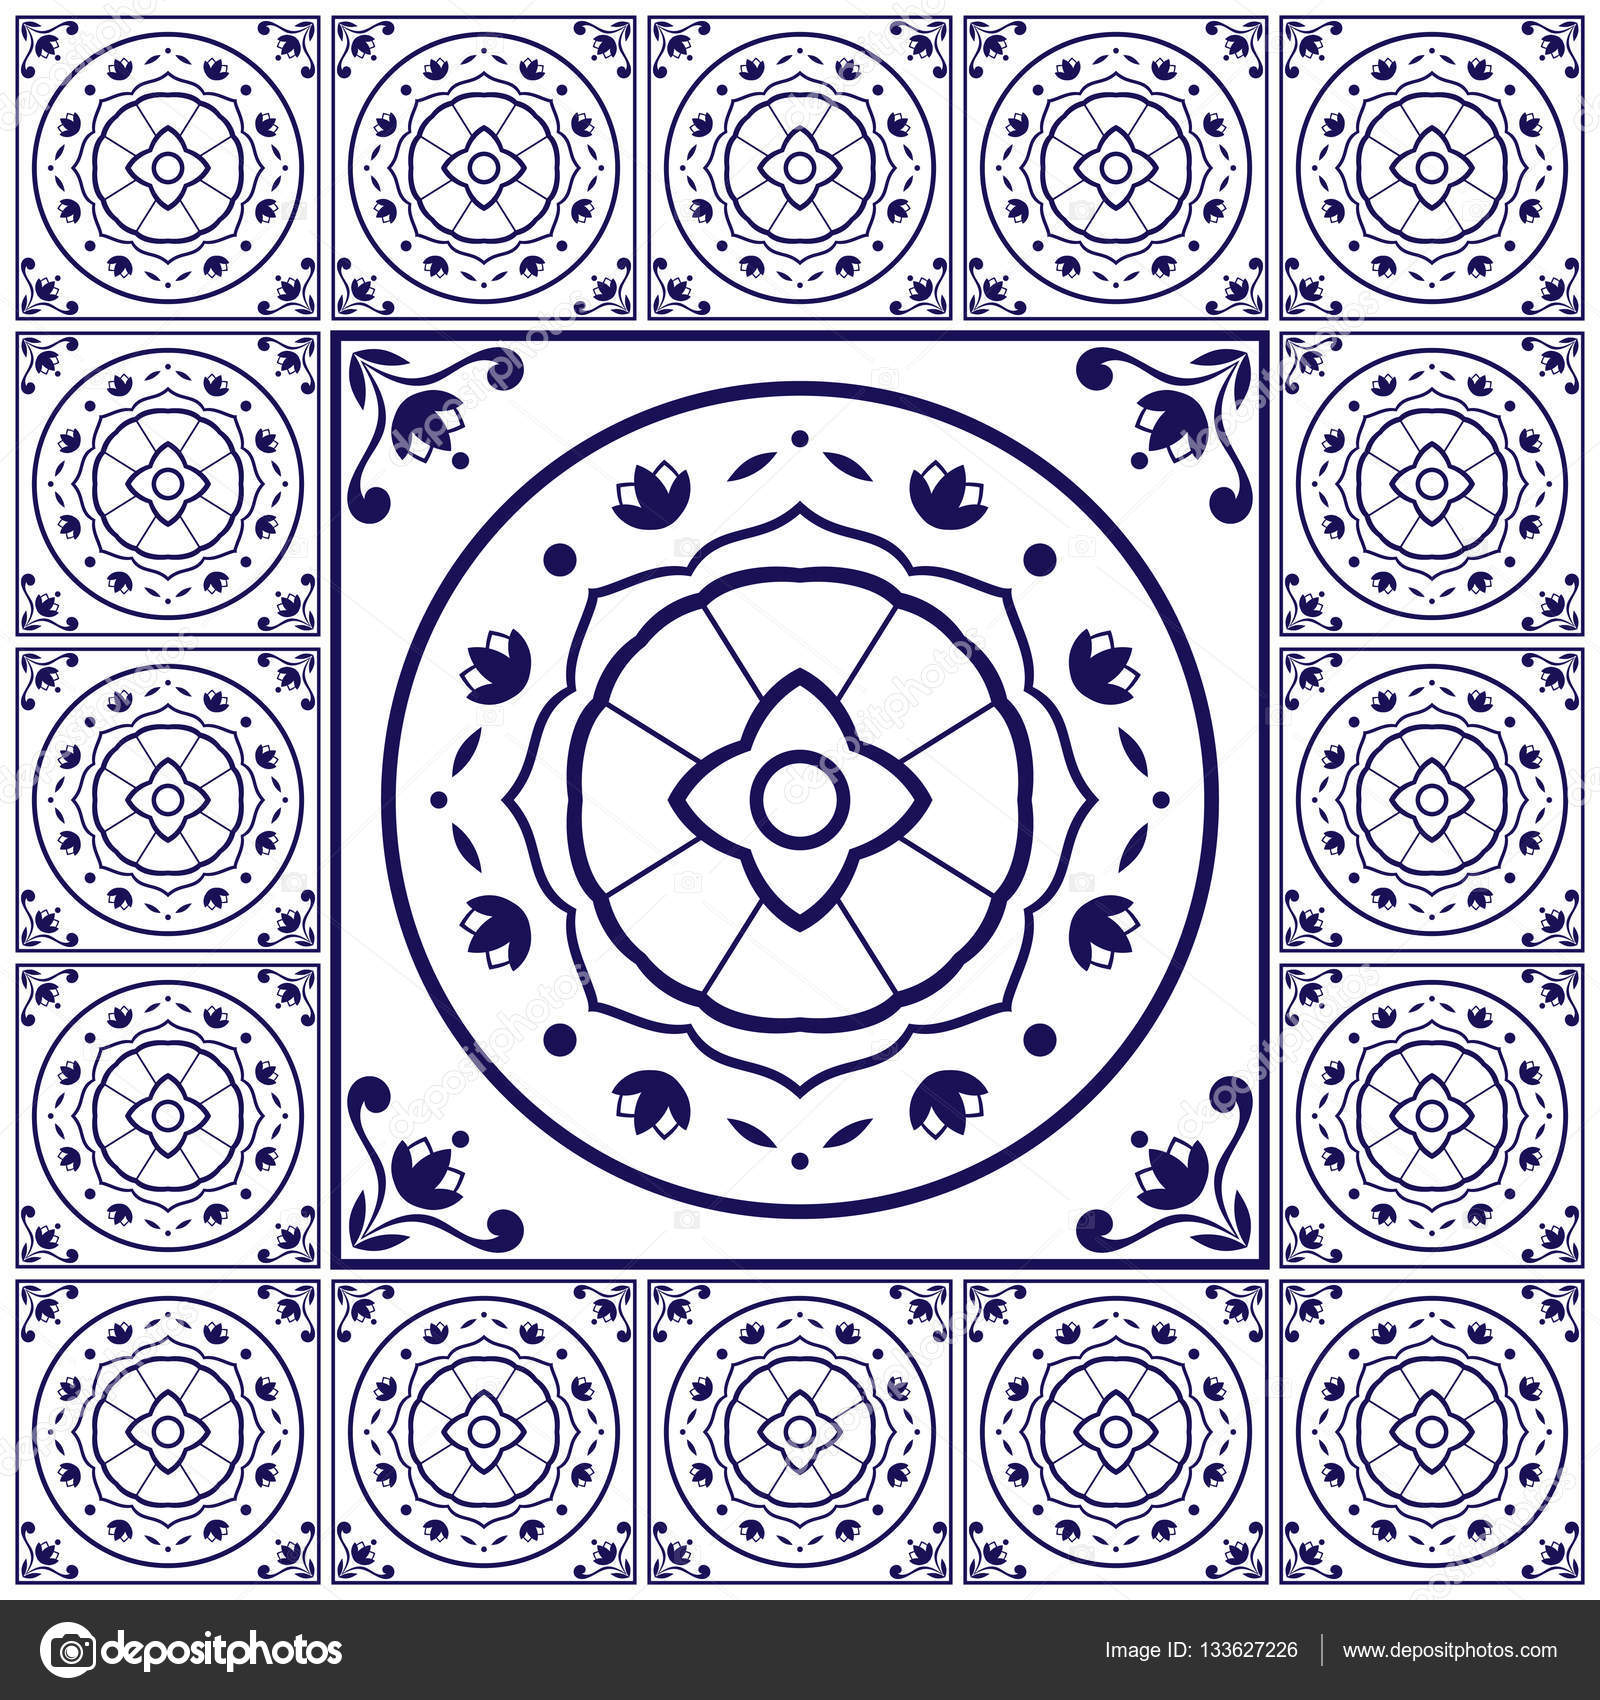 Blue white tiles floor pattern vector with ceramic cement tiles big blue white tiles floor pattern vector with ceramic cement tiles big tile in center is framed background with portuguese azulejo dutch delft dailygadgetfo Image collections